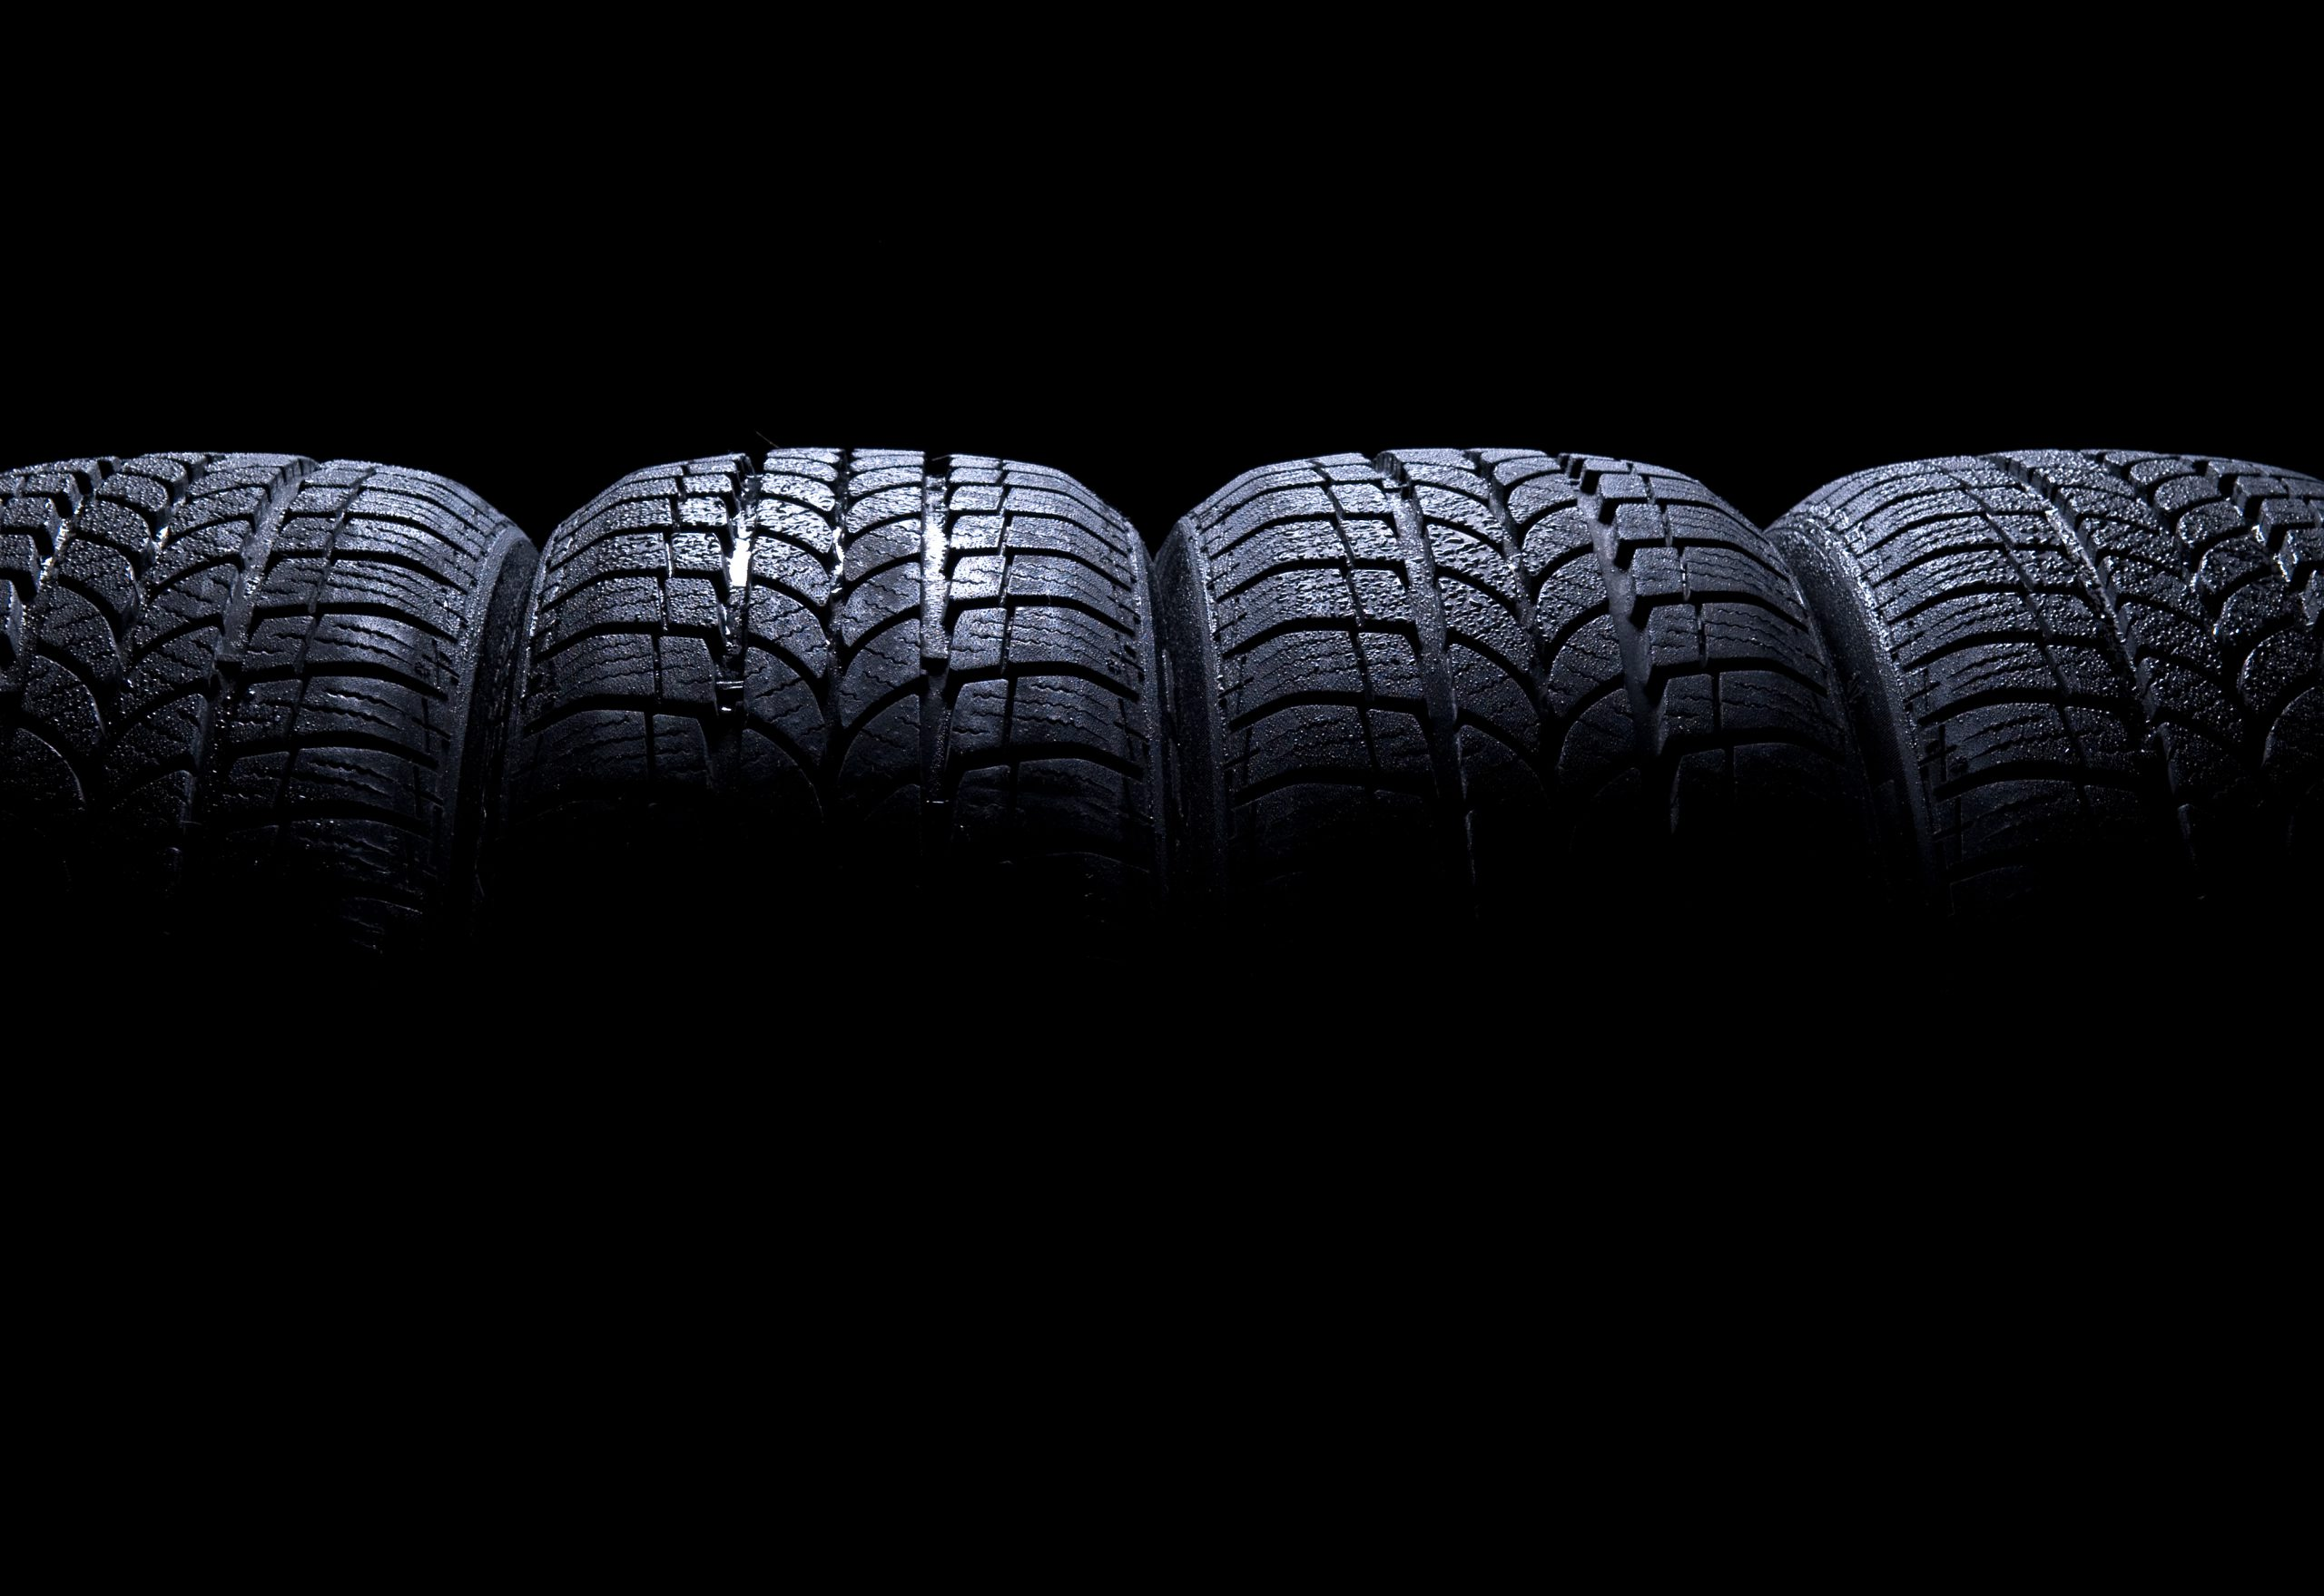 an image of tires